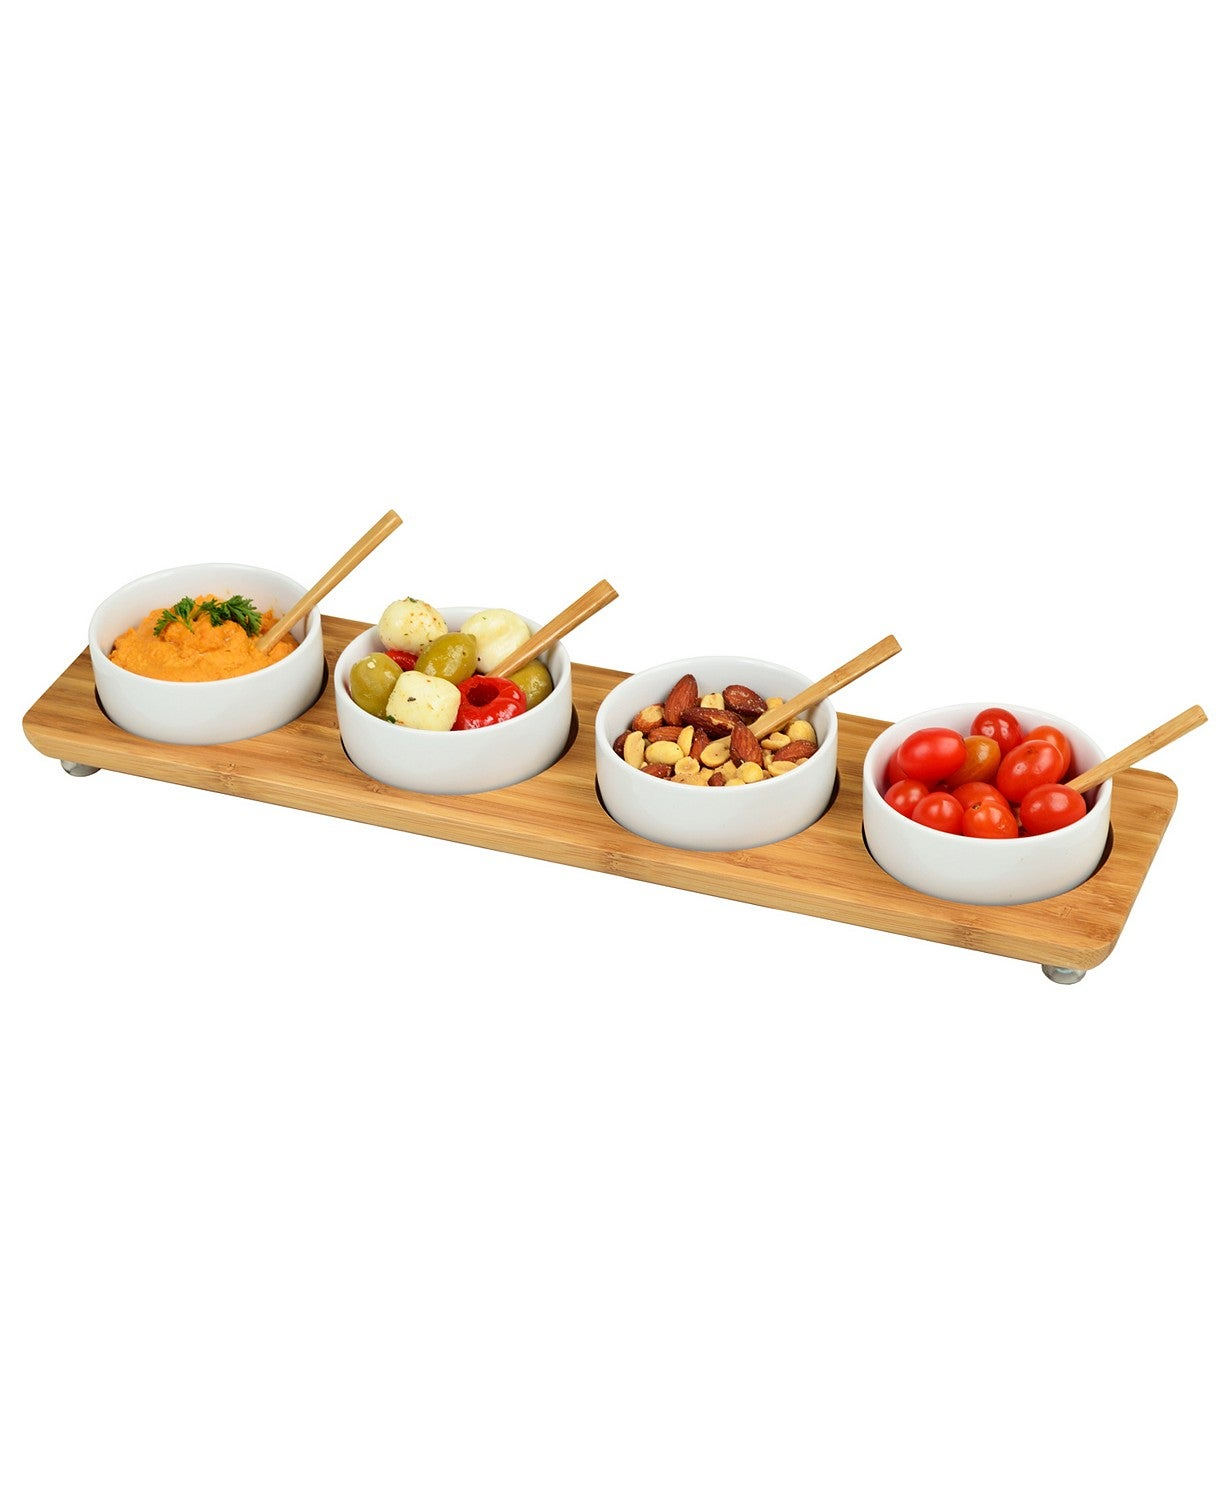 Picnic At Ascot Bamboo Divided Serving Platter with 4 Bowls and 4 Bamboo Spoons